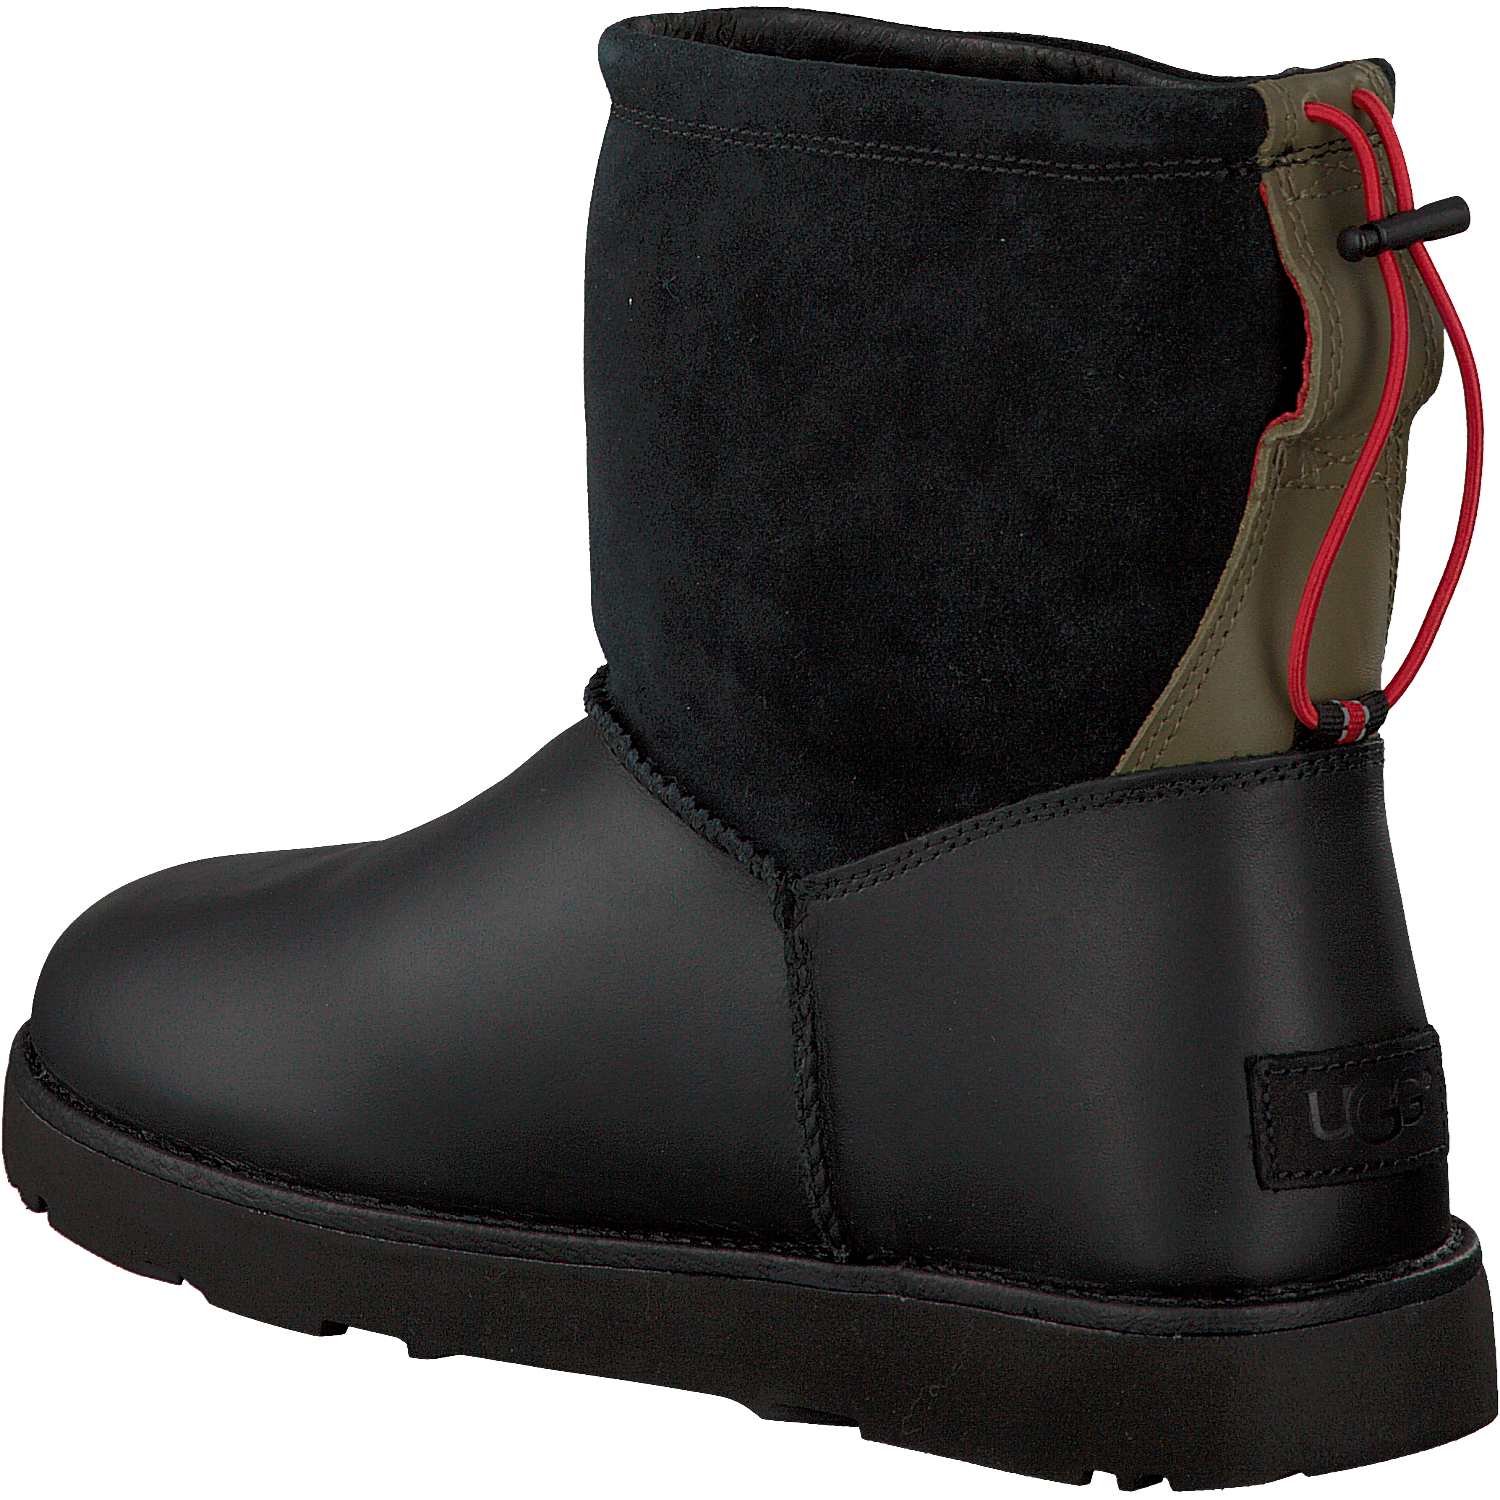 schwarze ugg ankle boots classic toggle waterproof jetzt. Black Bedroom Furniture Sets. Home Design Ideas